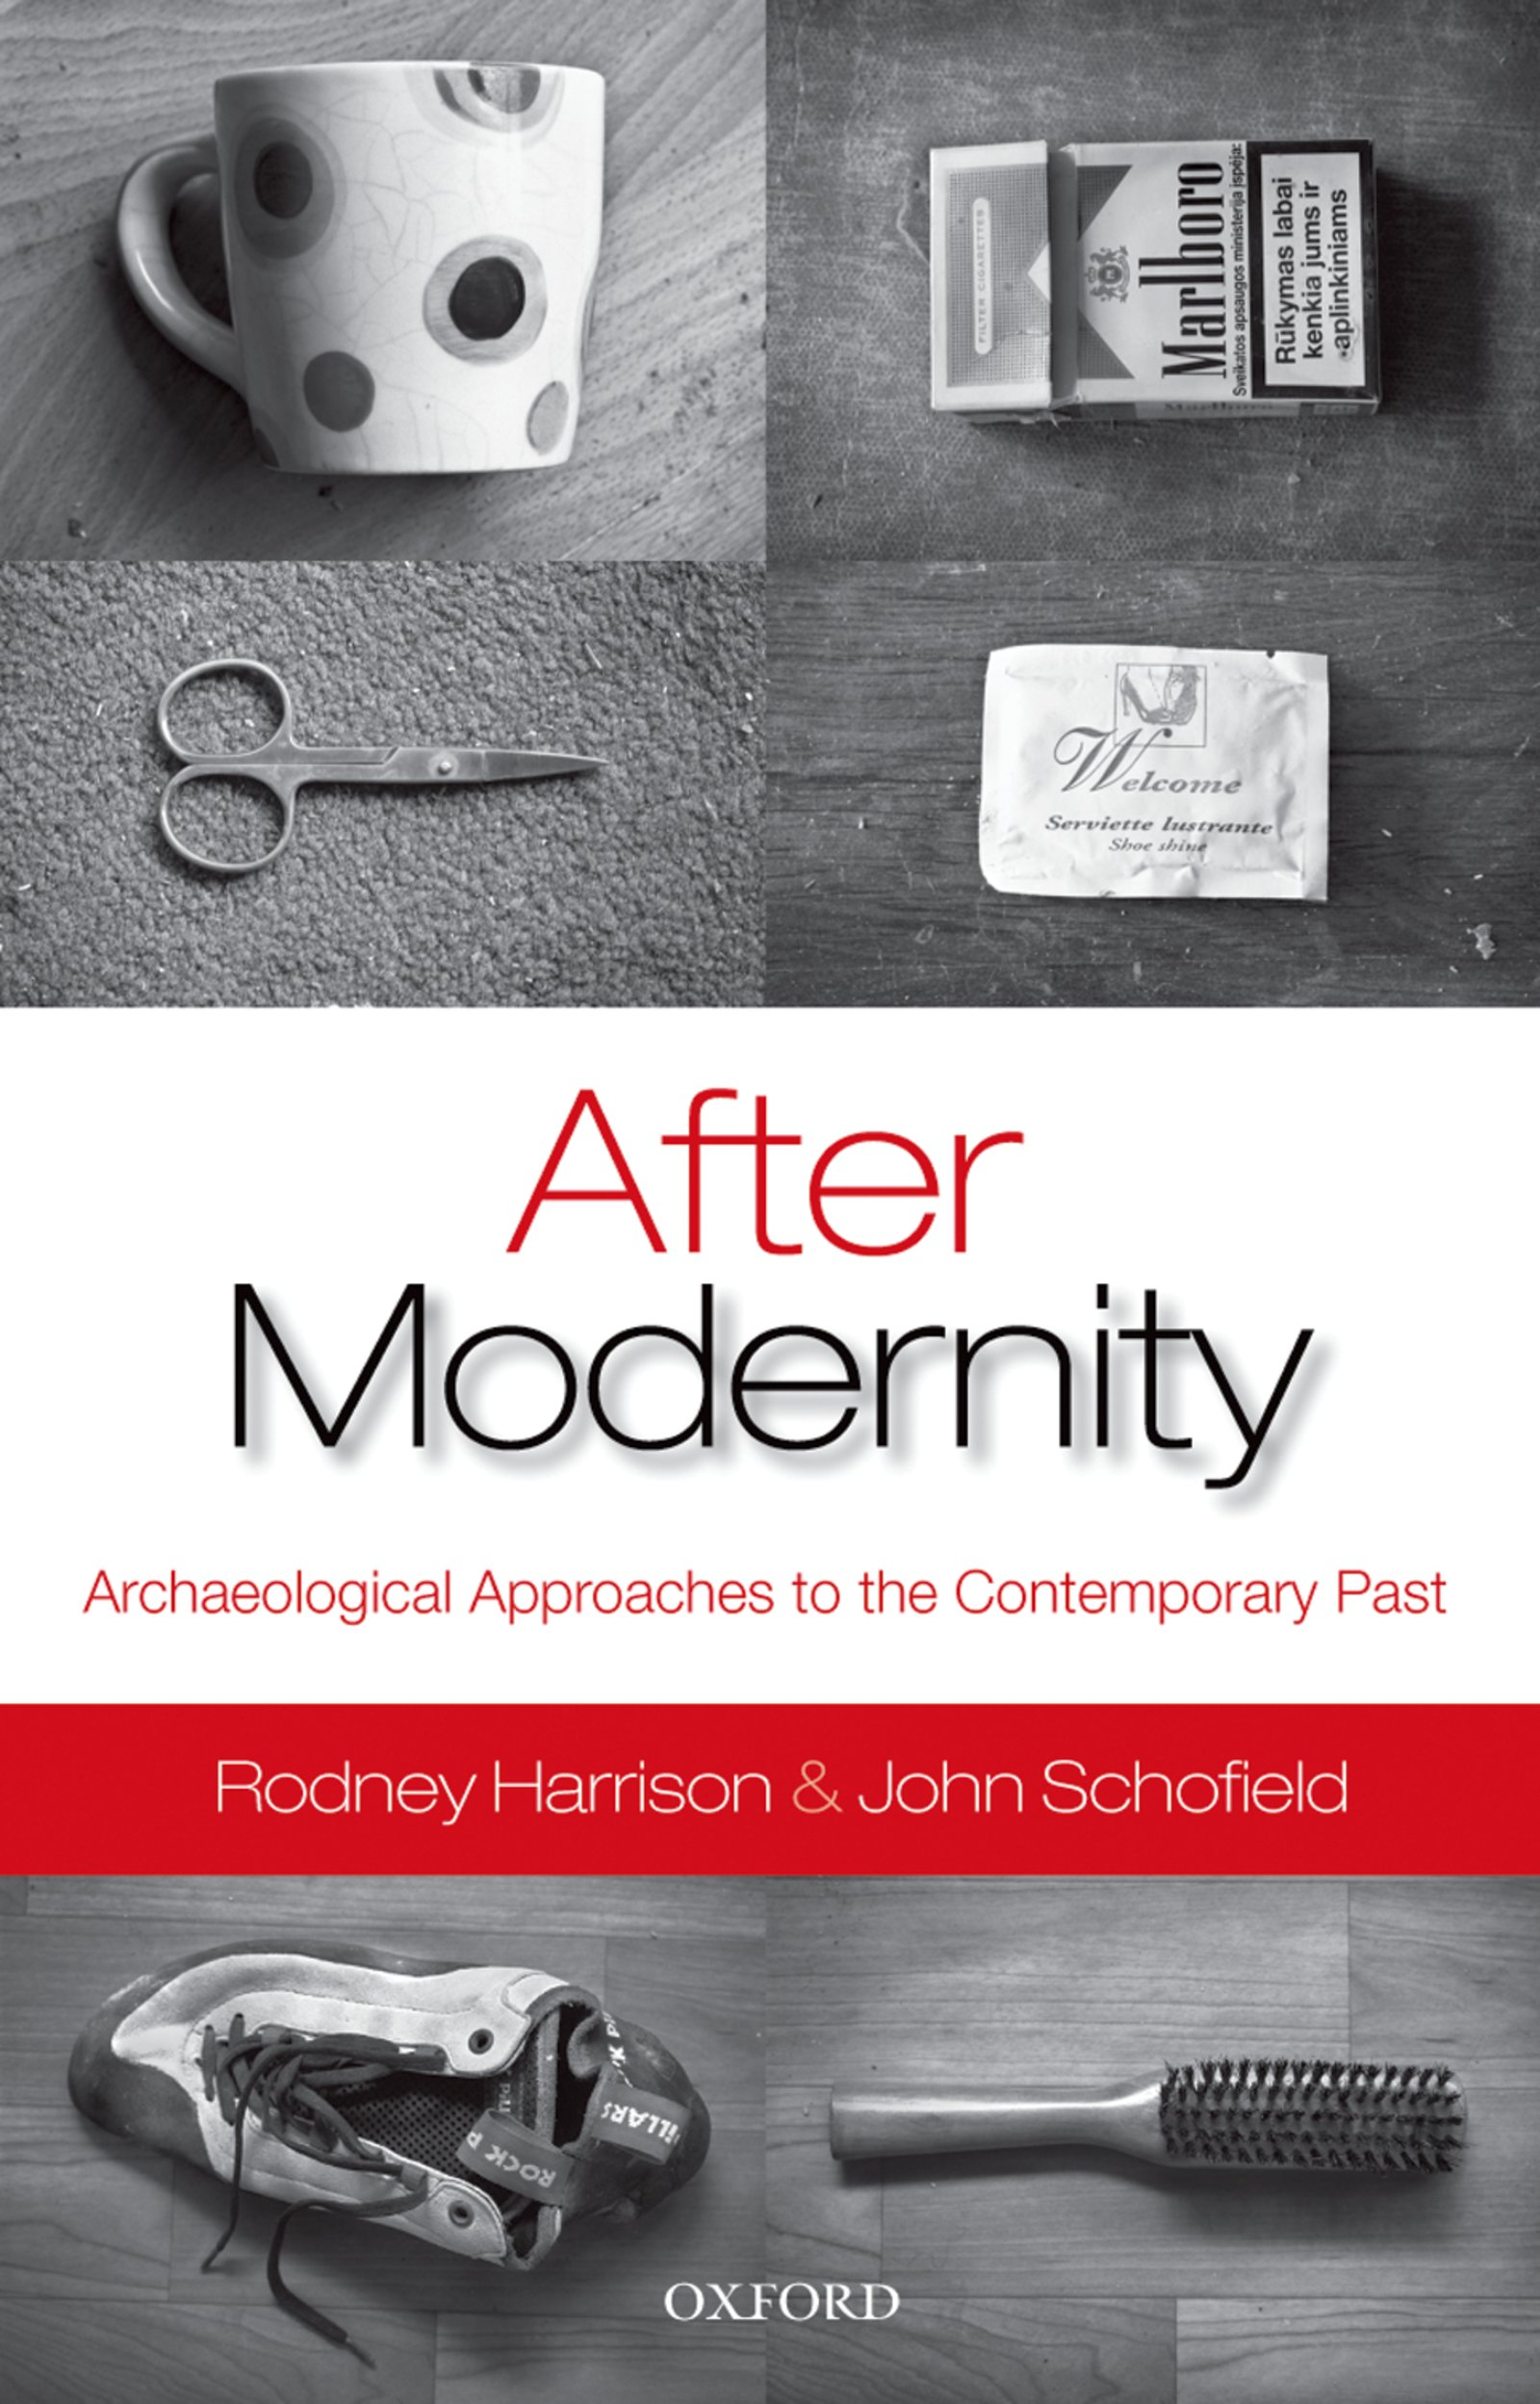 After ModernityArchaeological Approaches to the Contemporary Past